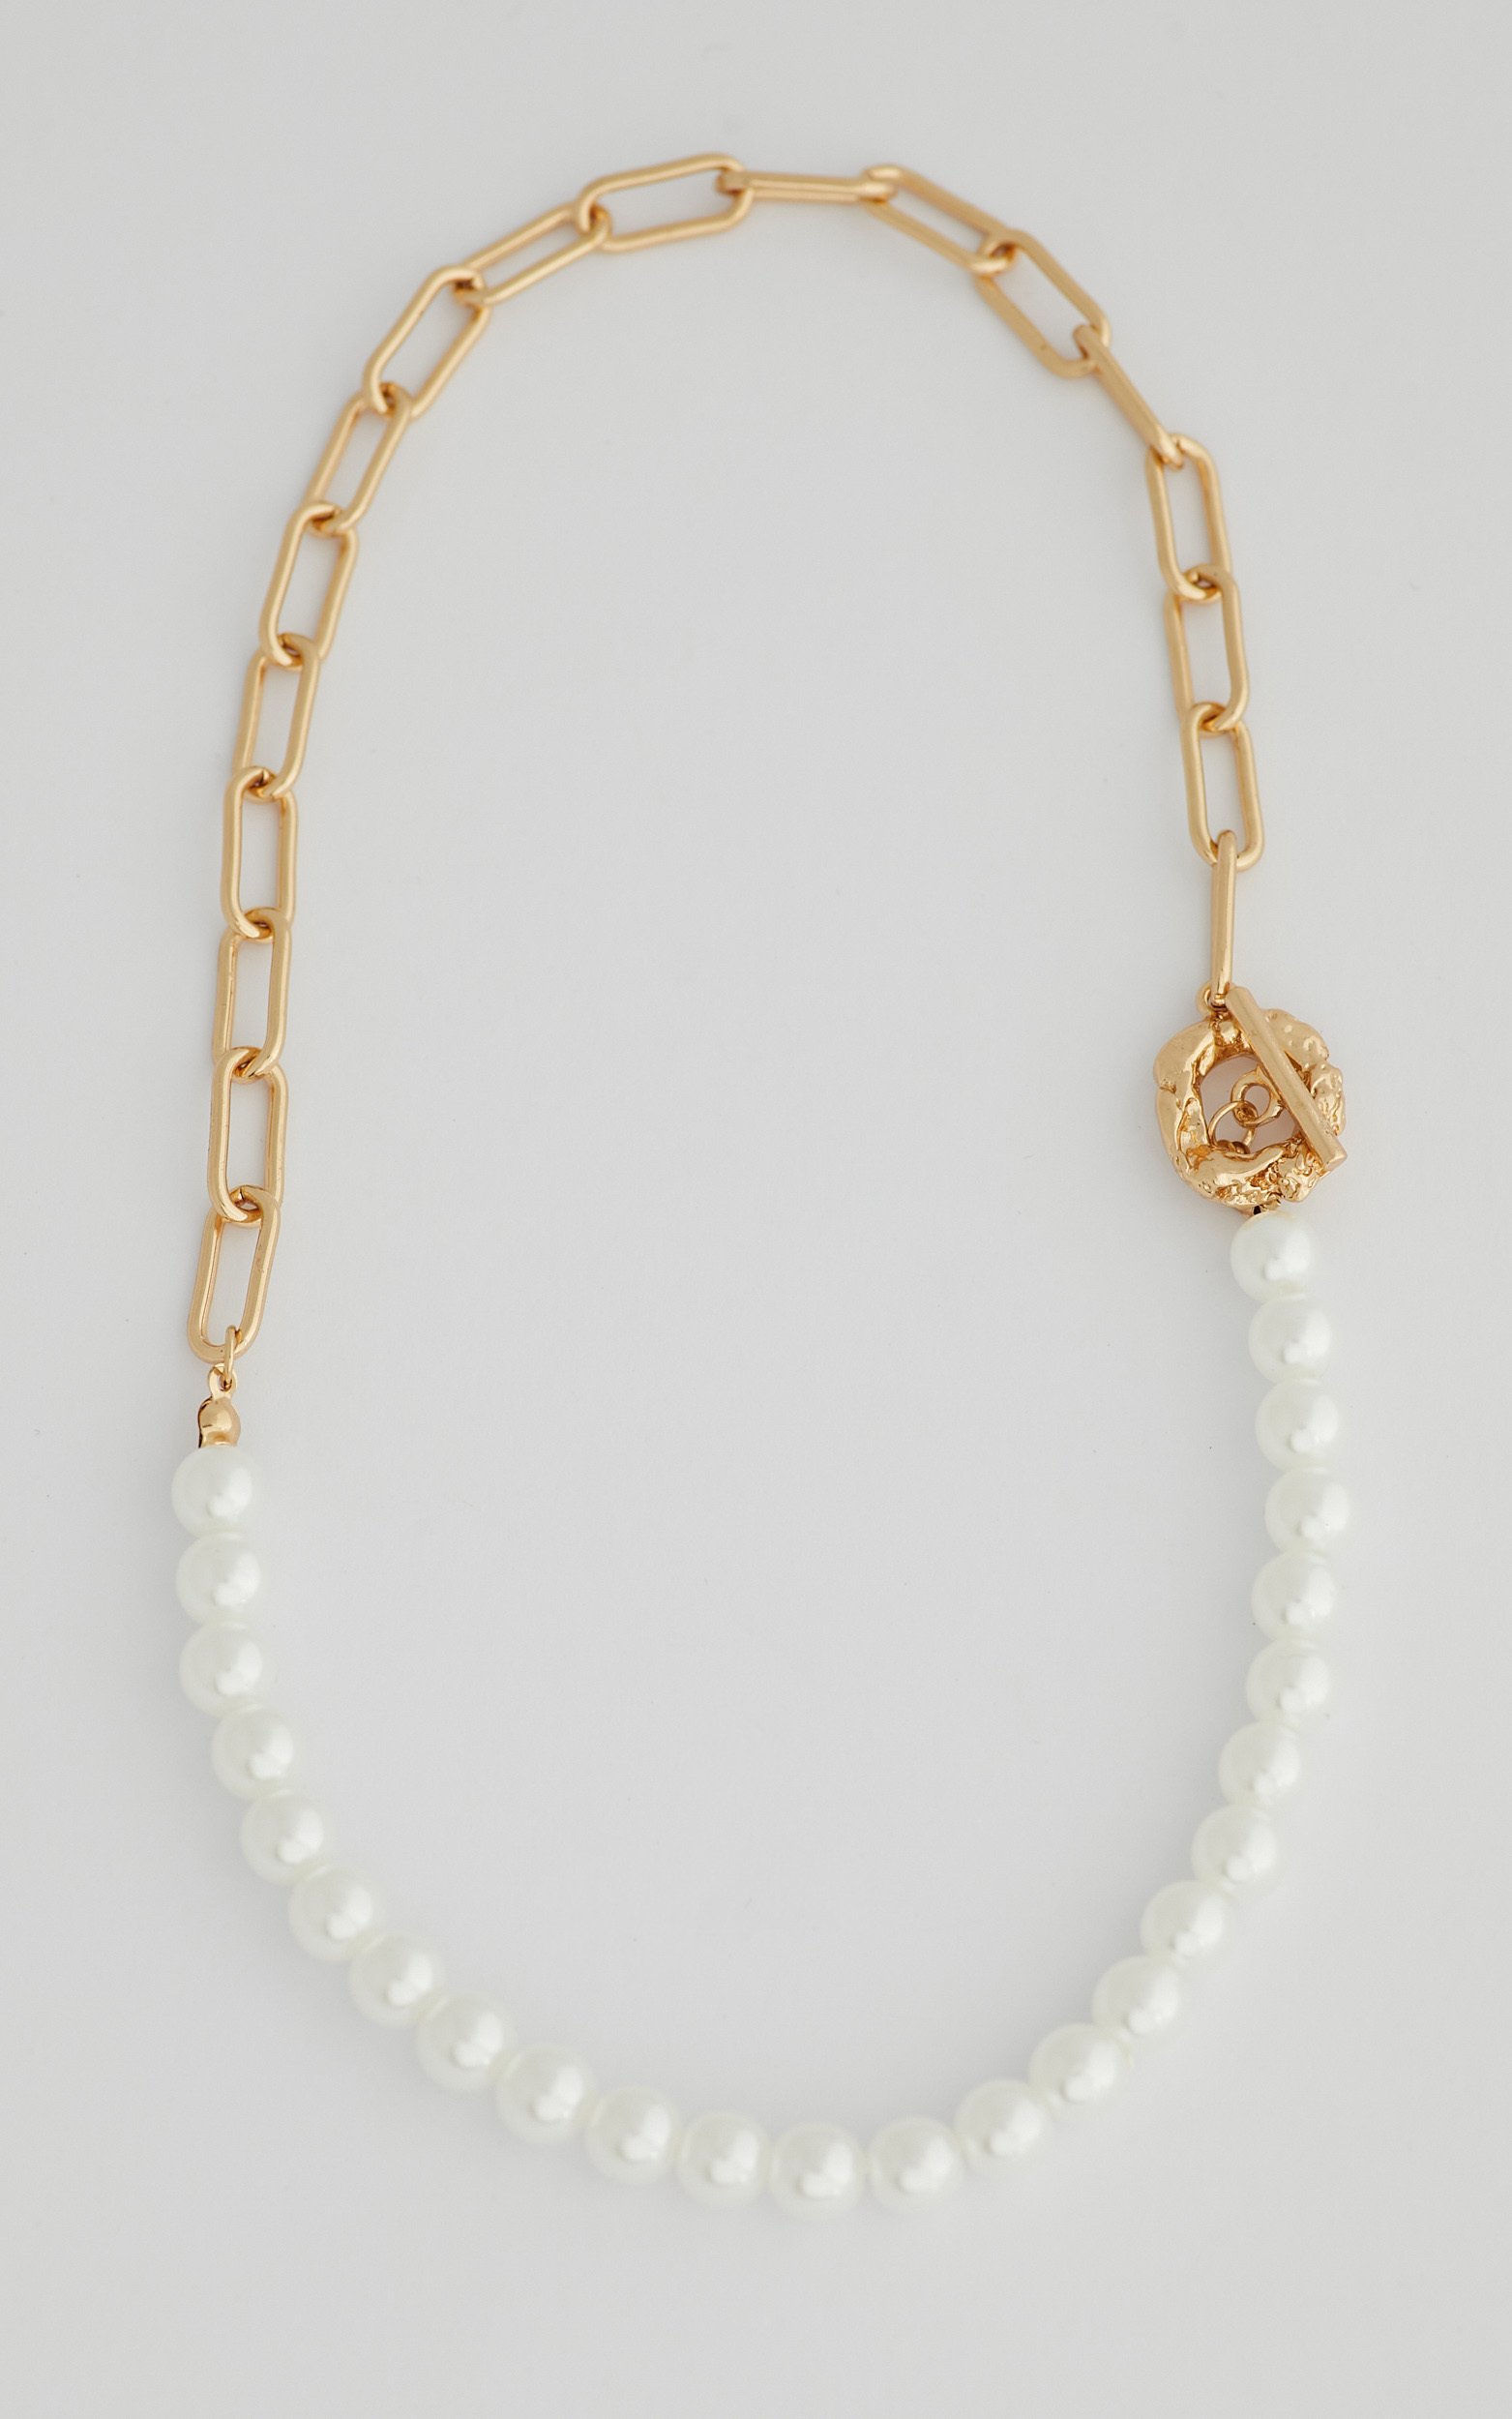 Flo Necklace in Gold - NoSize, GLD1, hi-res image number null